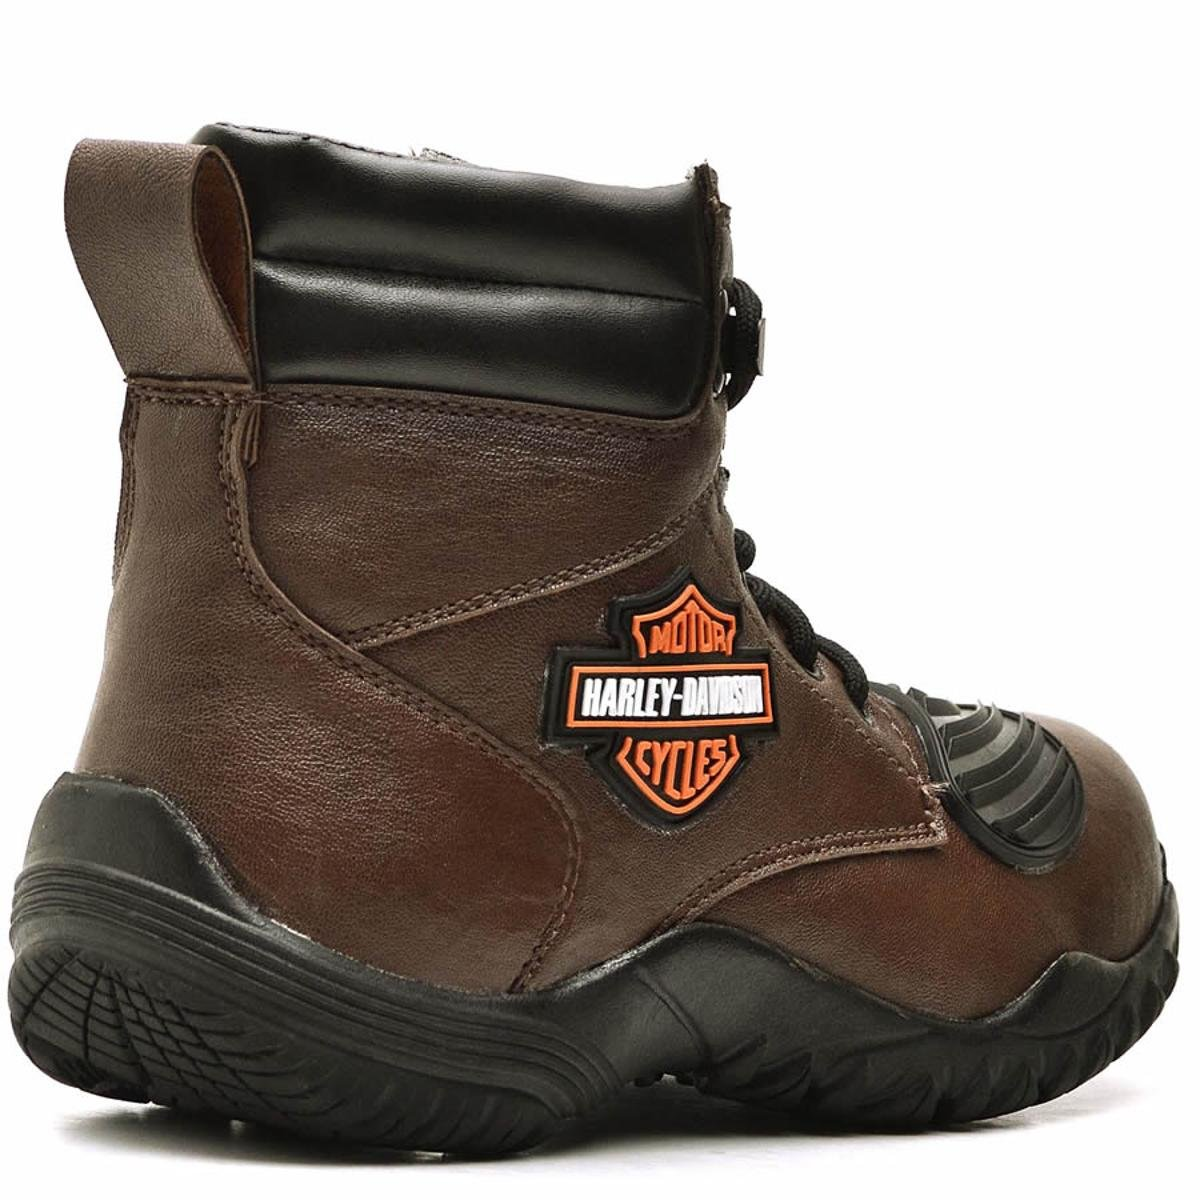 Adventure Bota Top Adventure Top Bota Shoes Café Shoes Franca Franca aOqx8